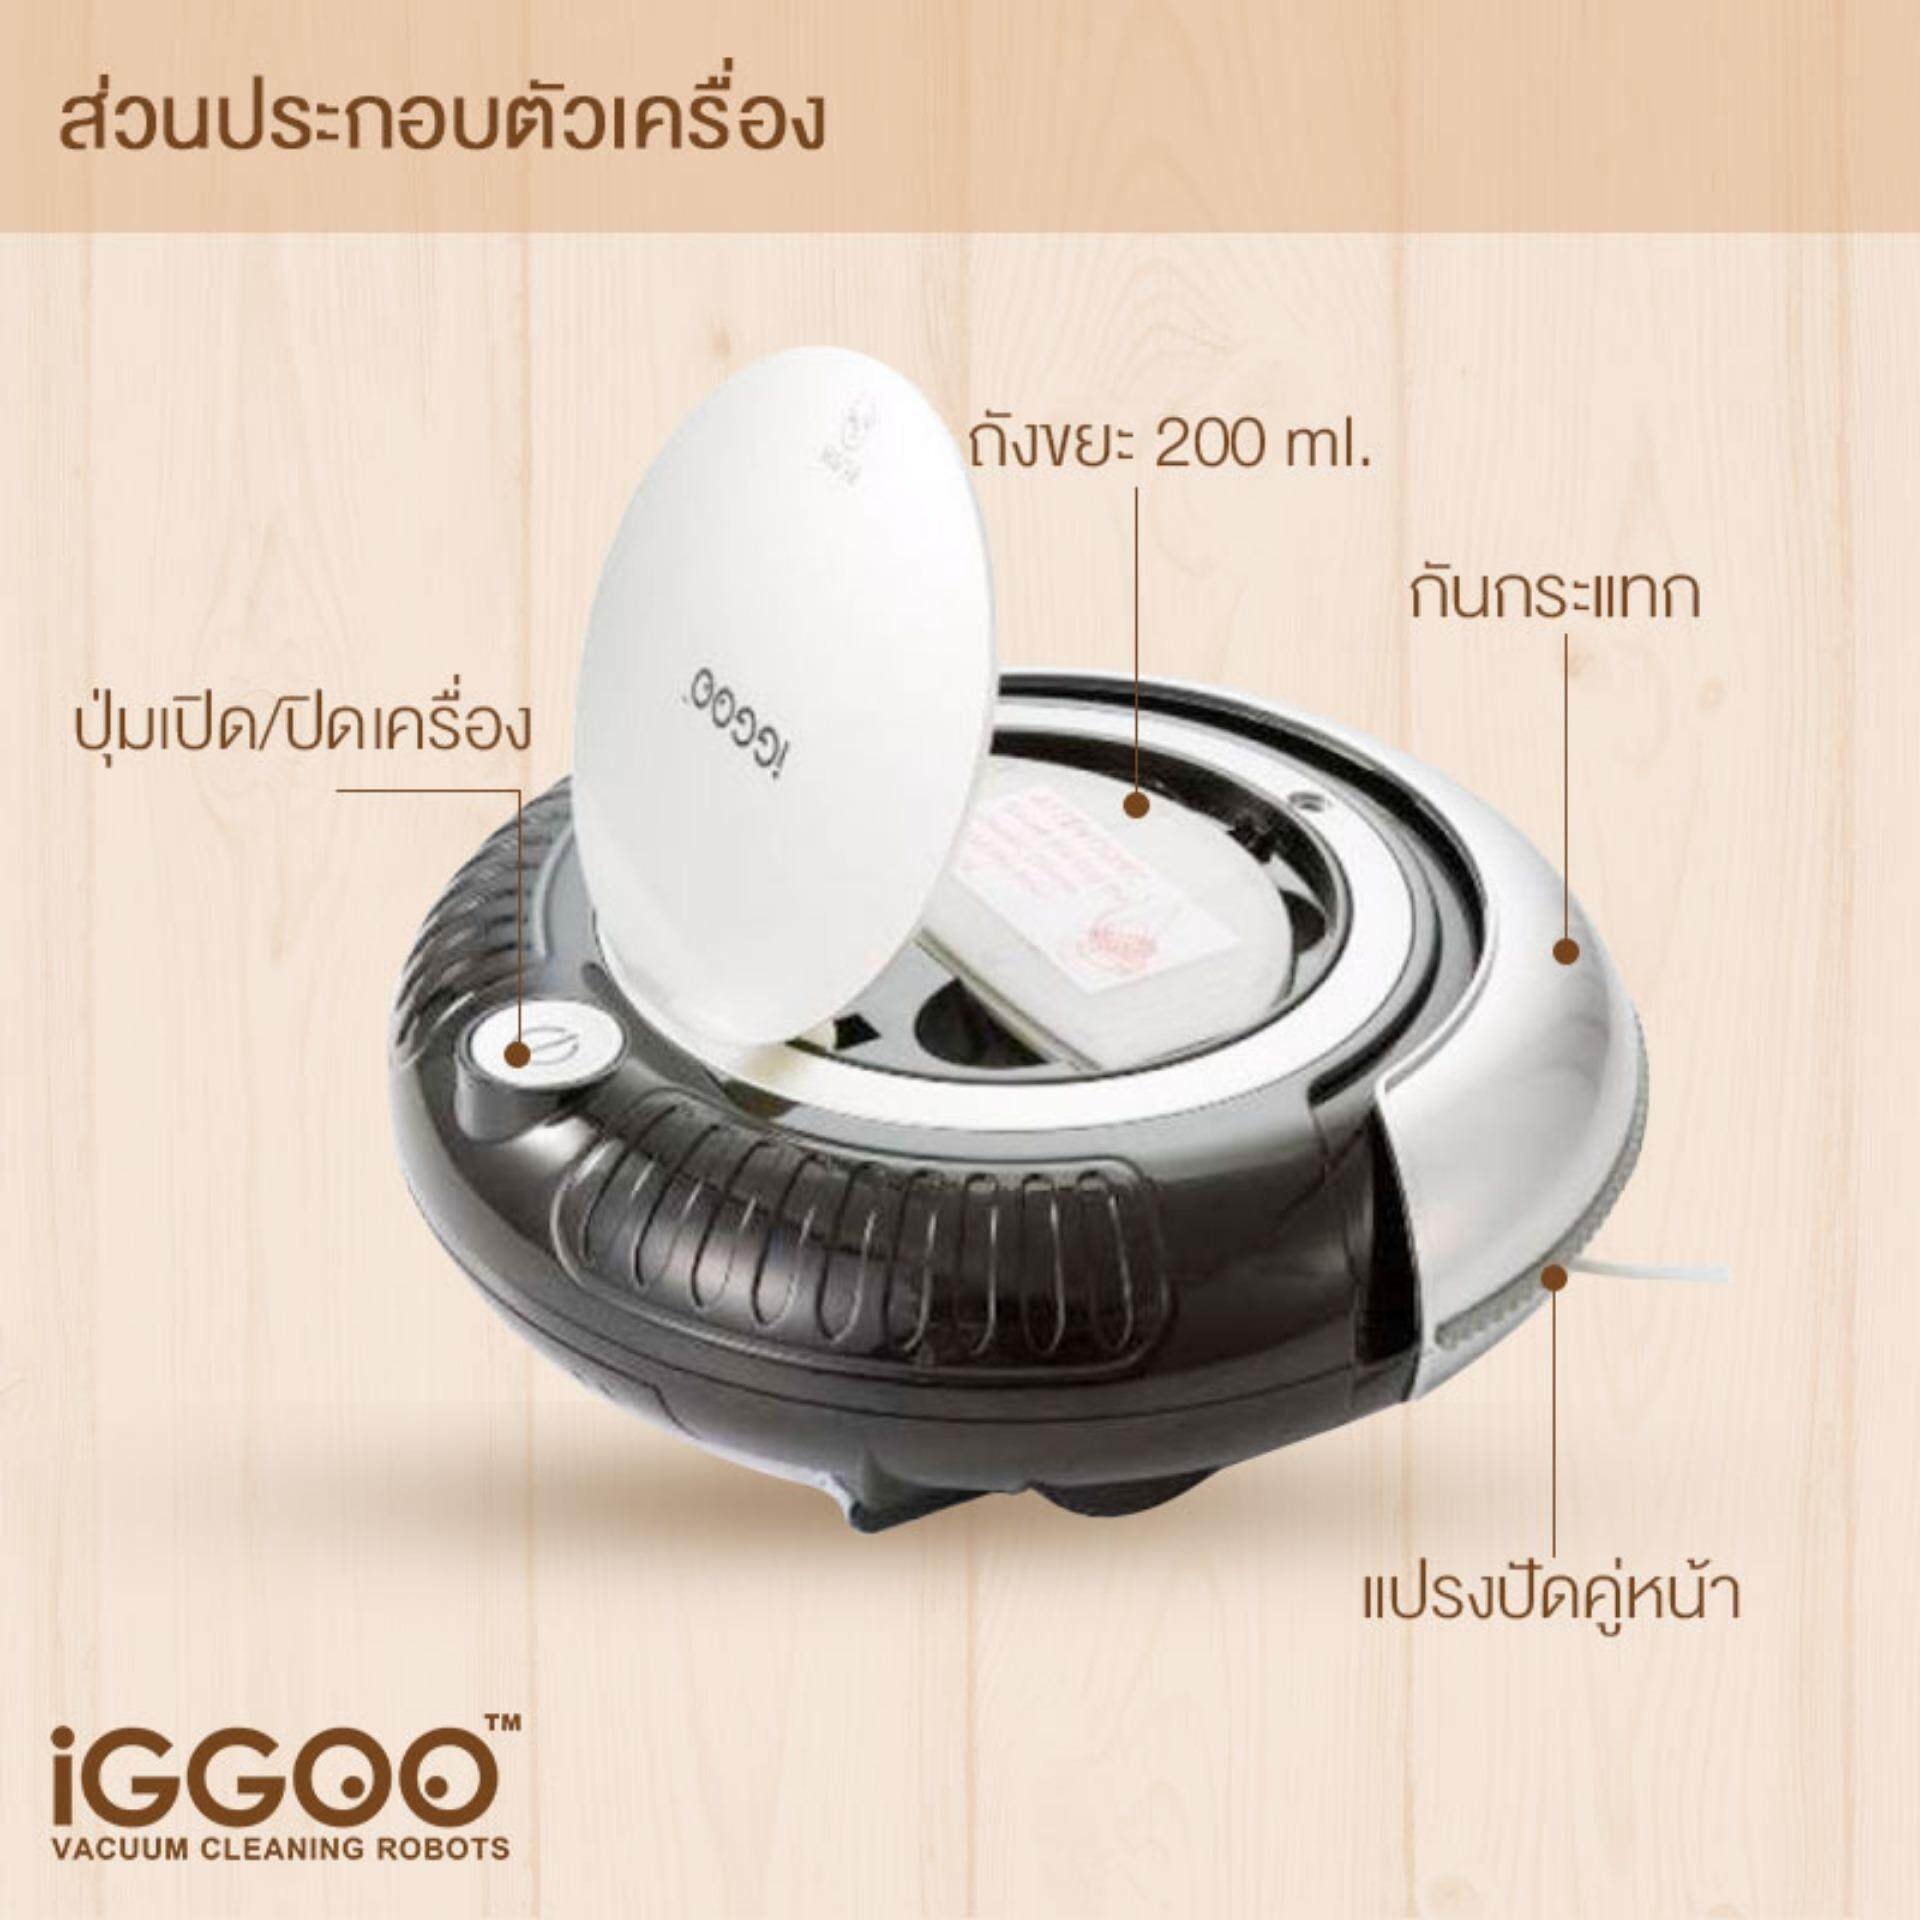 IGGOO Vacuum Cleaning Robot One Black